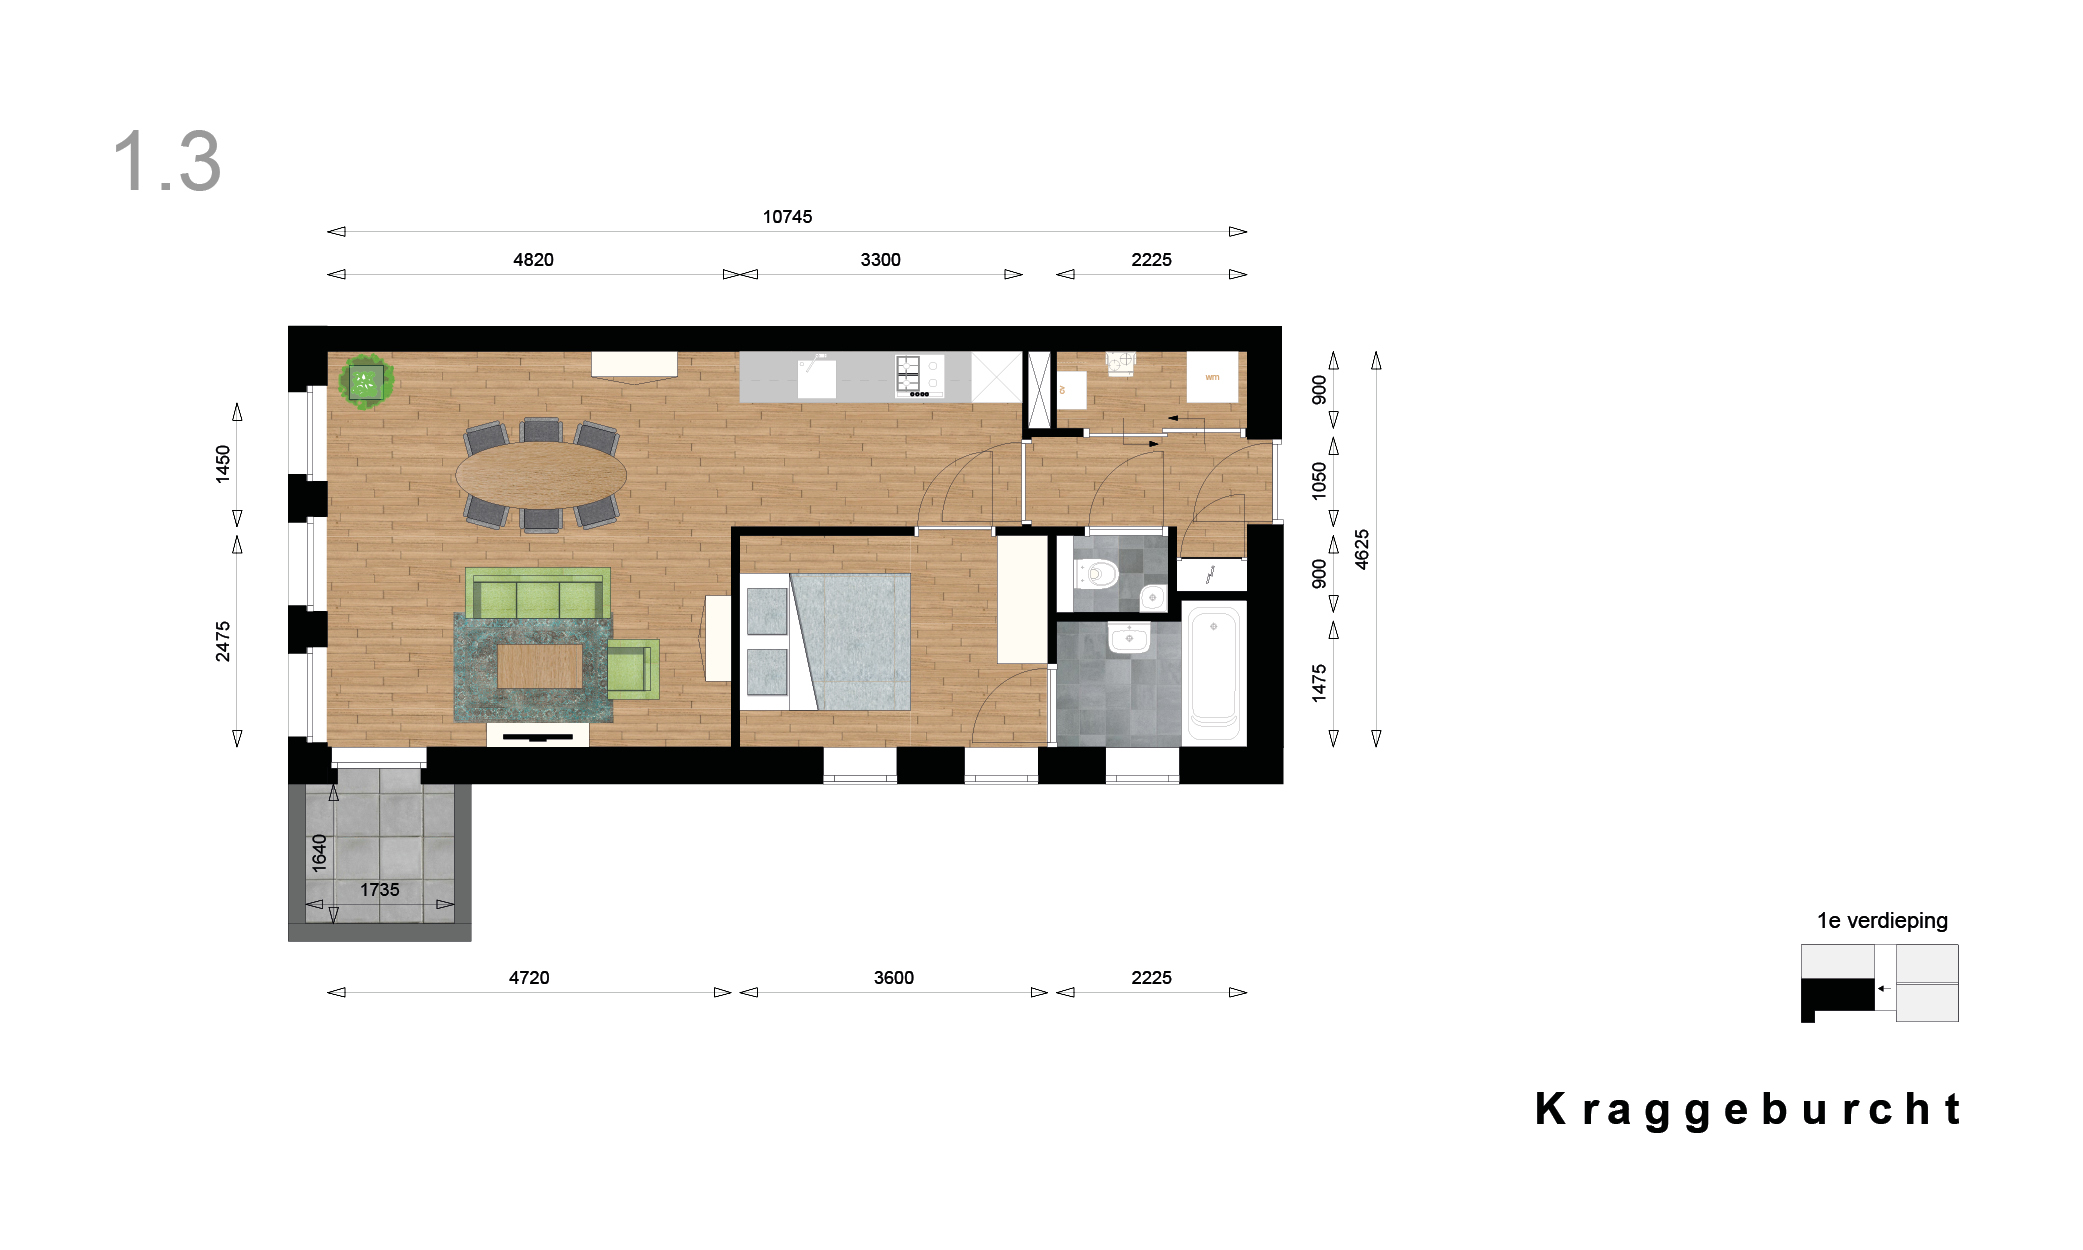 kraggeburcht-appartement-type-large7